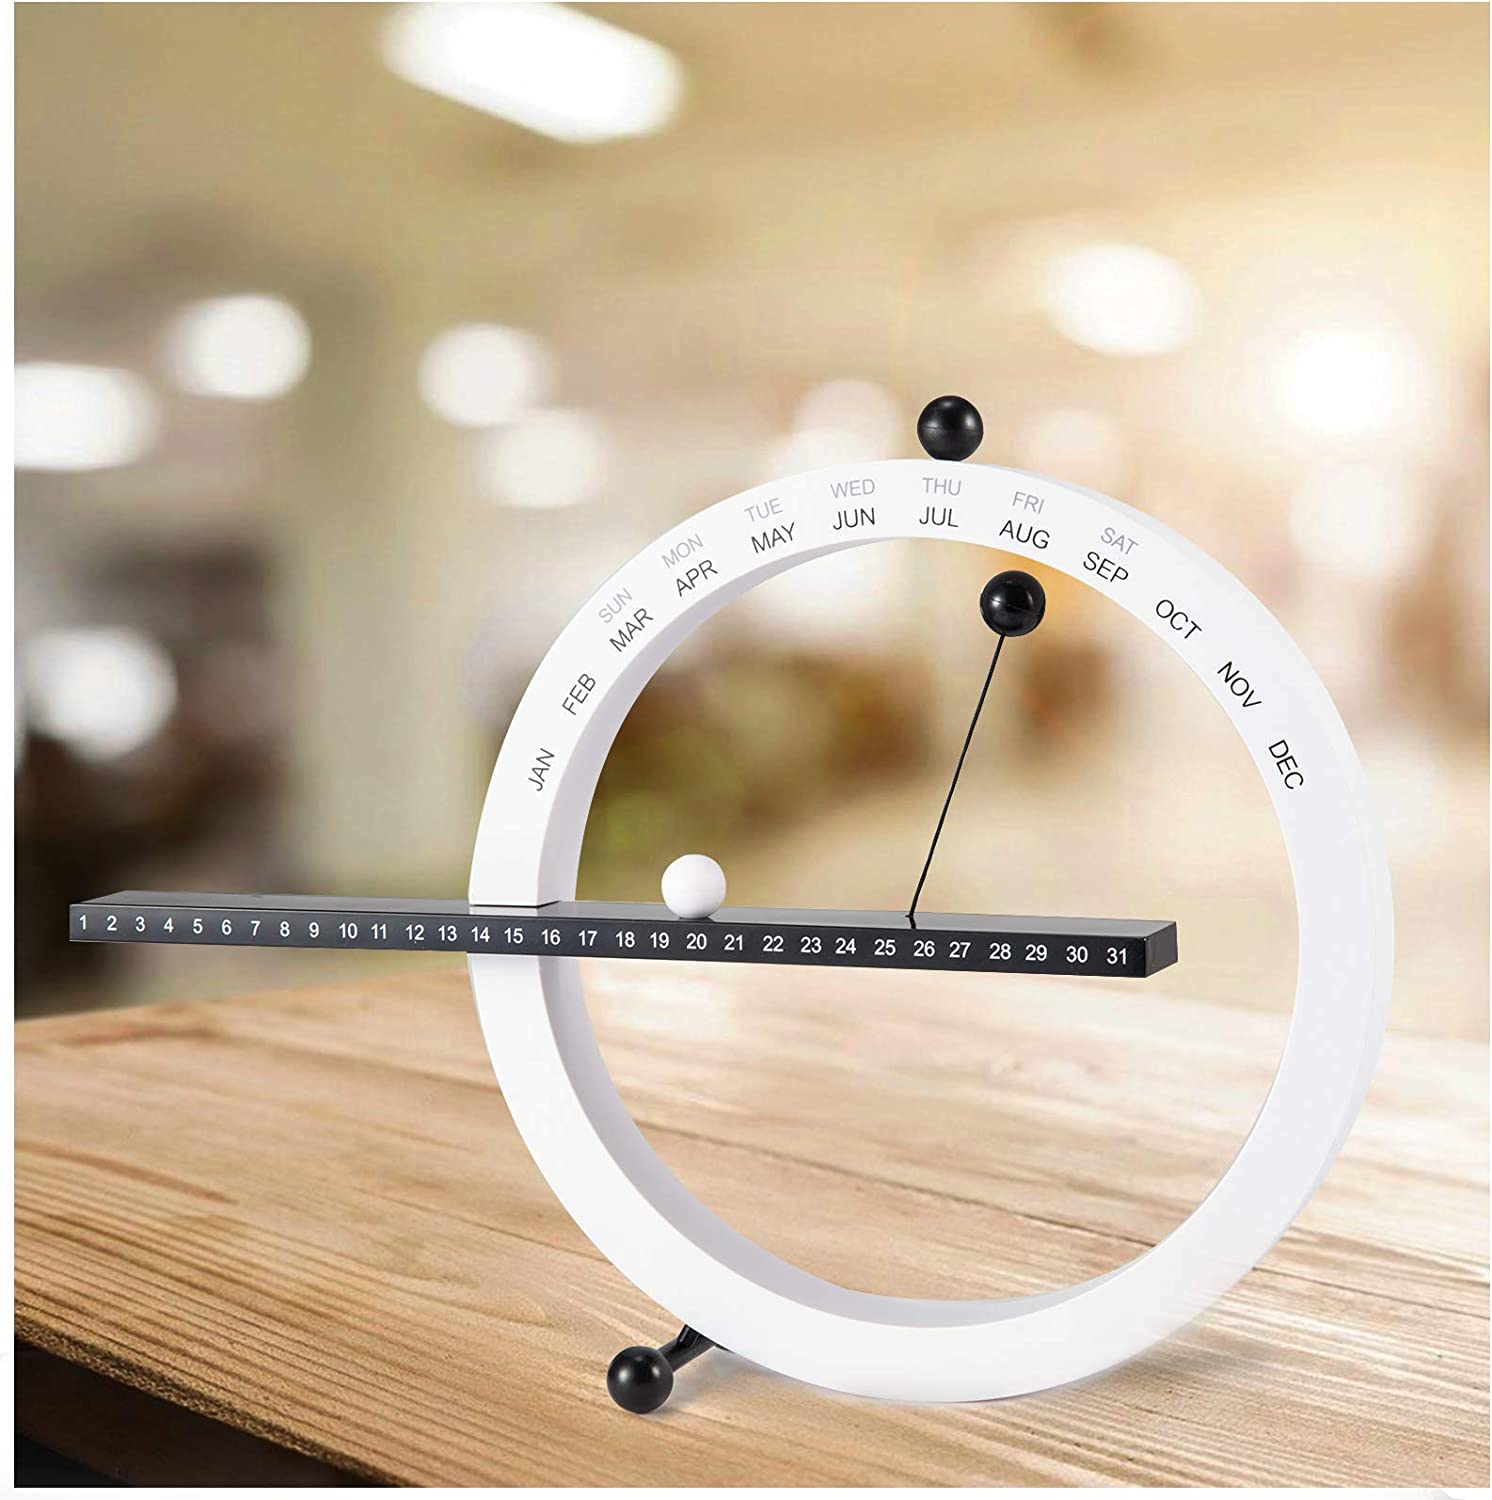 Creative Magnetic Ball Perpetual Calendar- Magnetic Ball Wall Clock Magnetic Desktop Perpetual Calender for Novelty Office Home Bedroom Decor (White and Black)